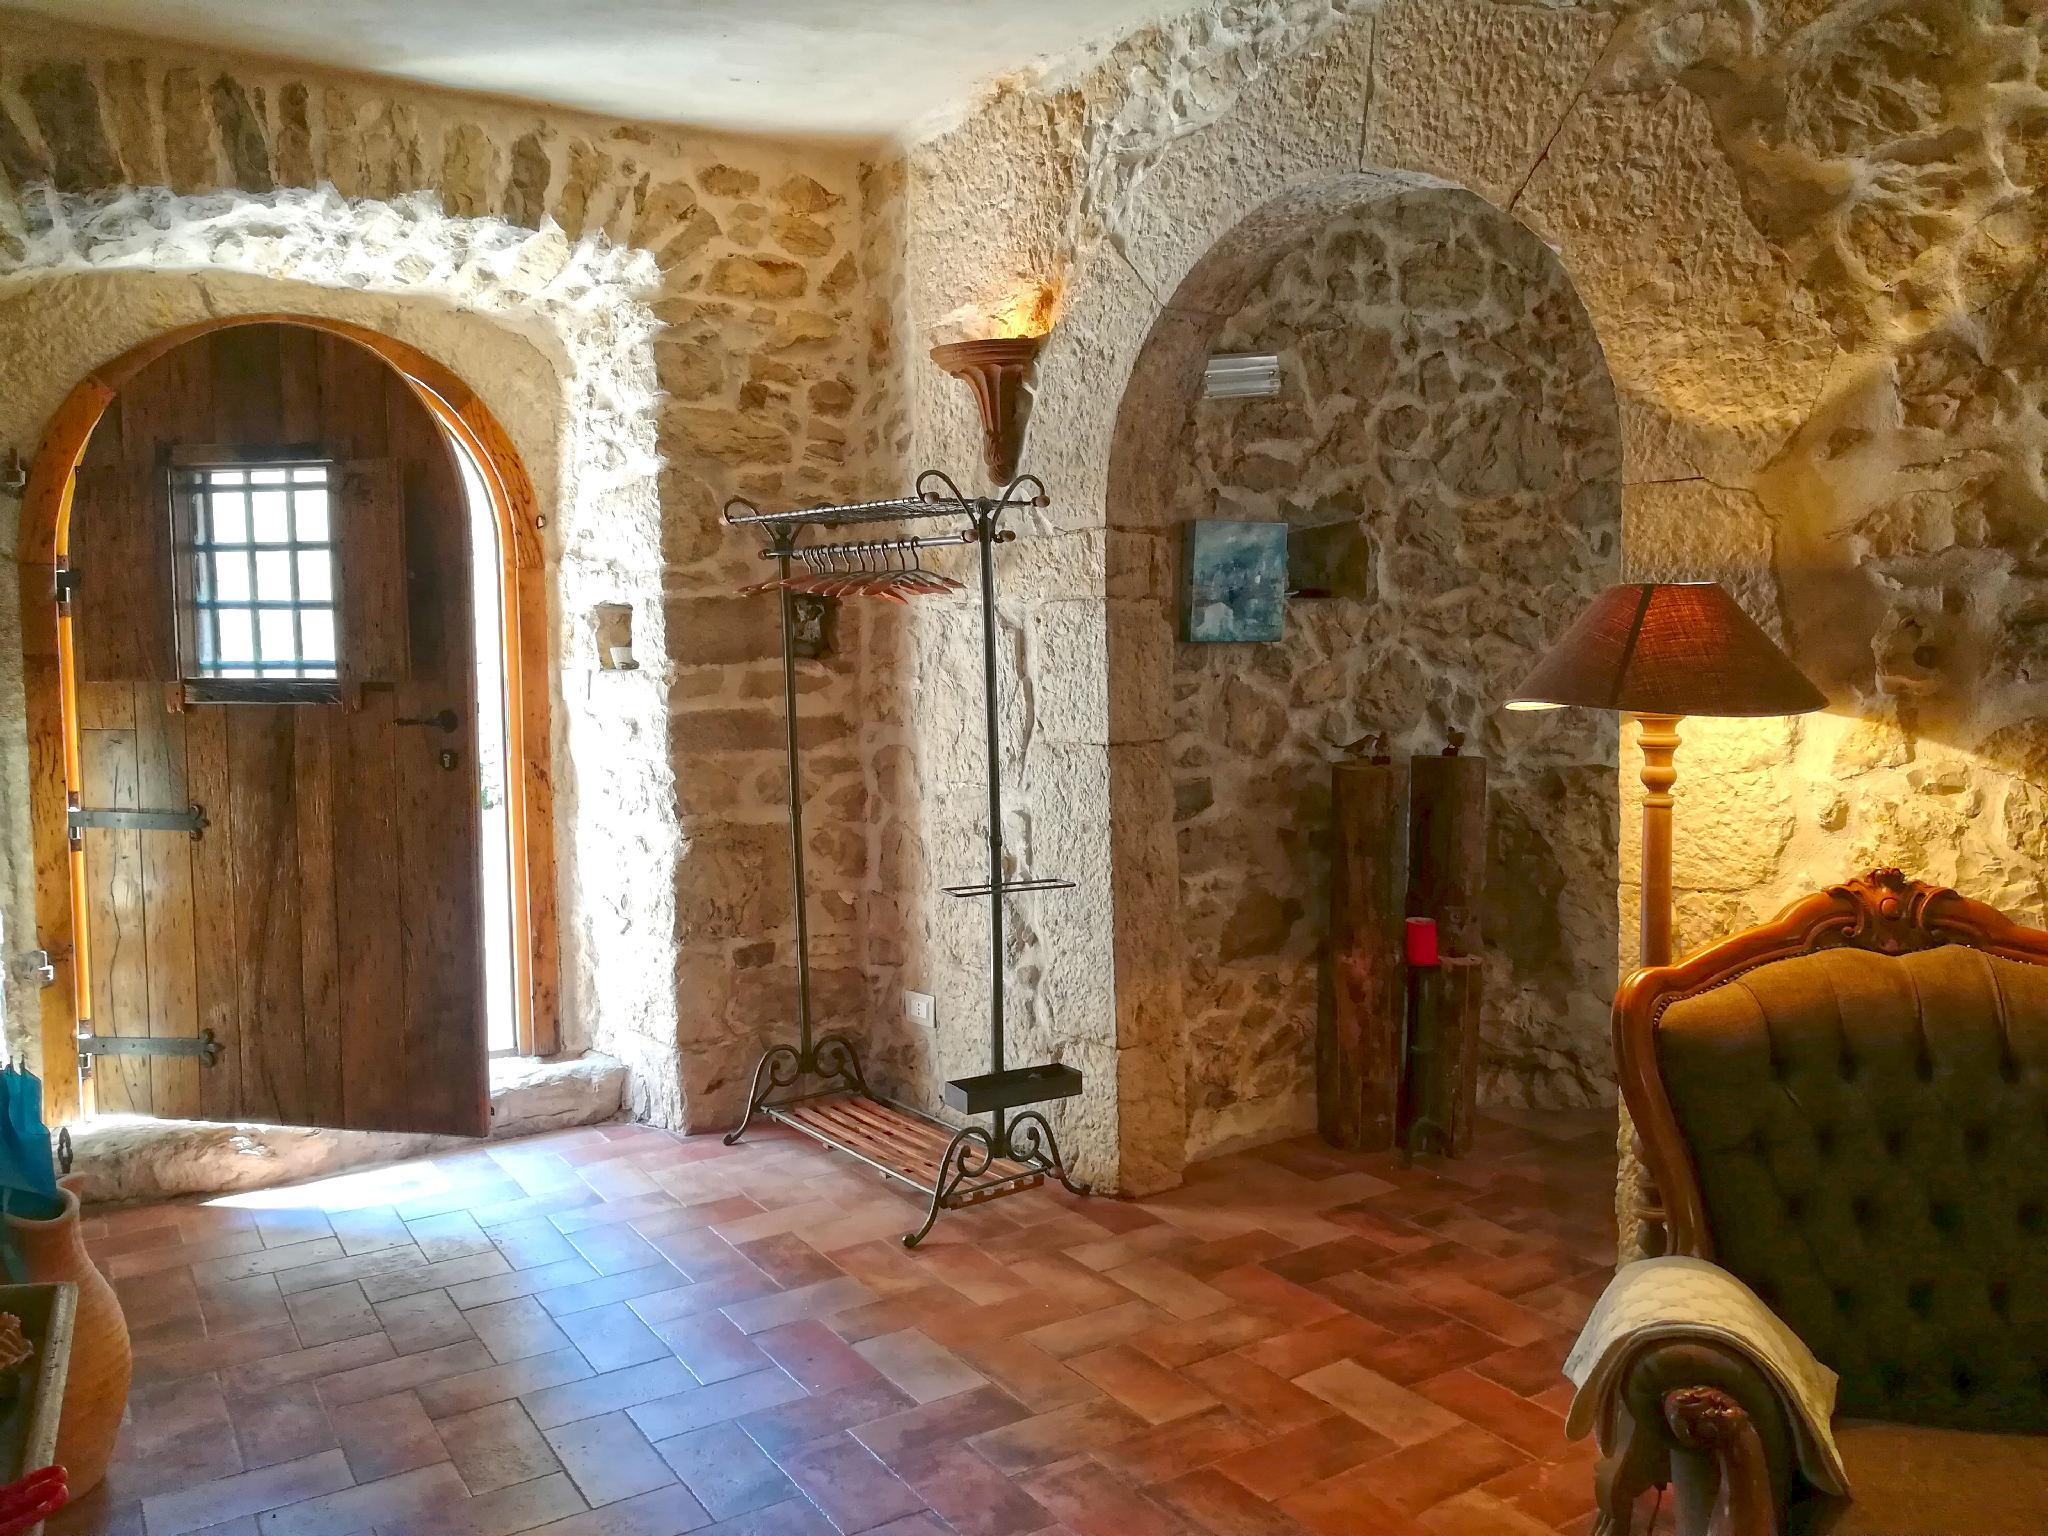 Milleunapietra, a charming country house near Cassino, between Rome and Naples